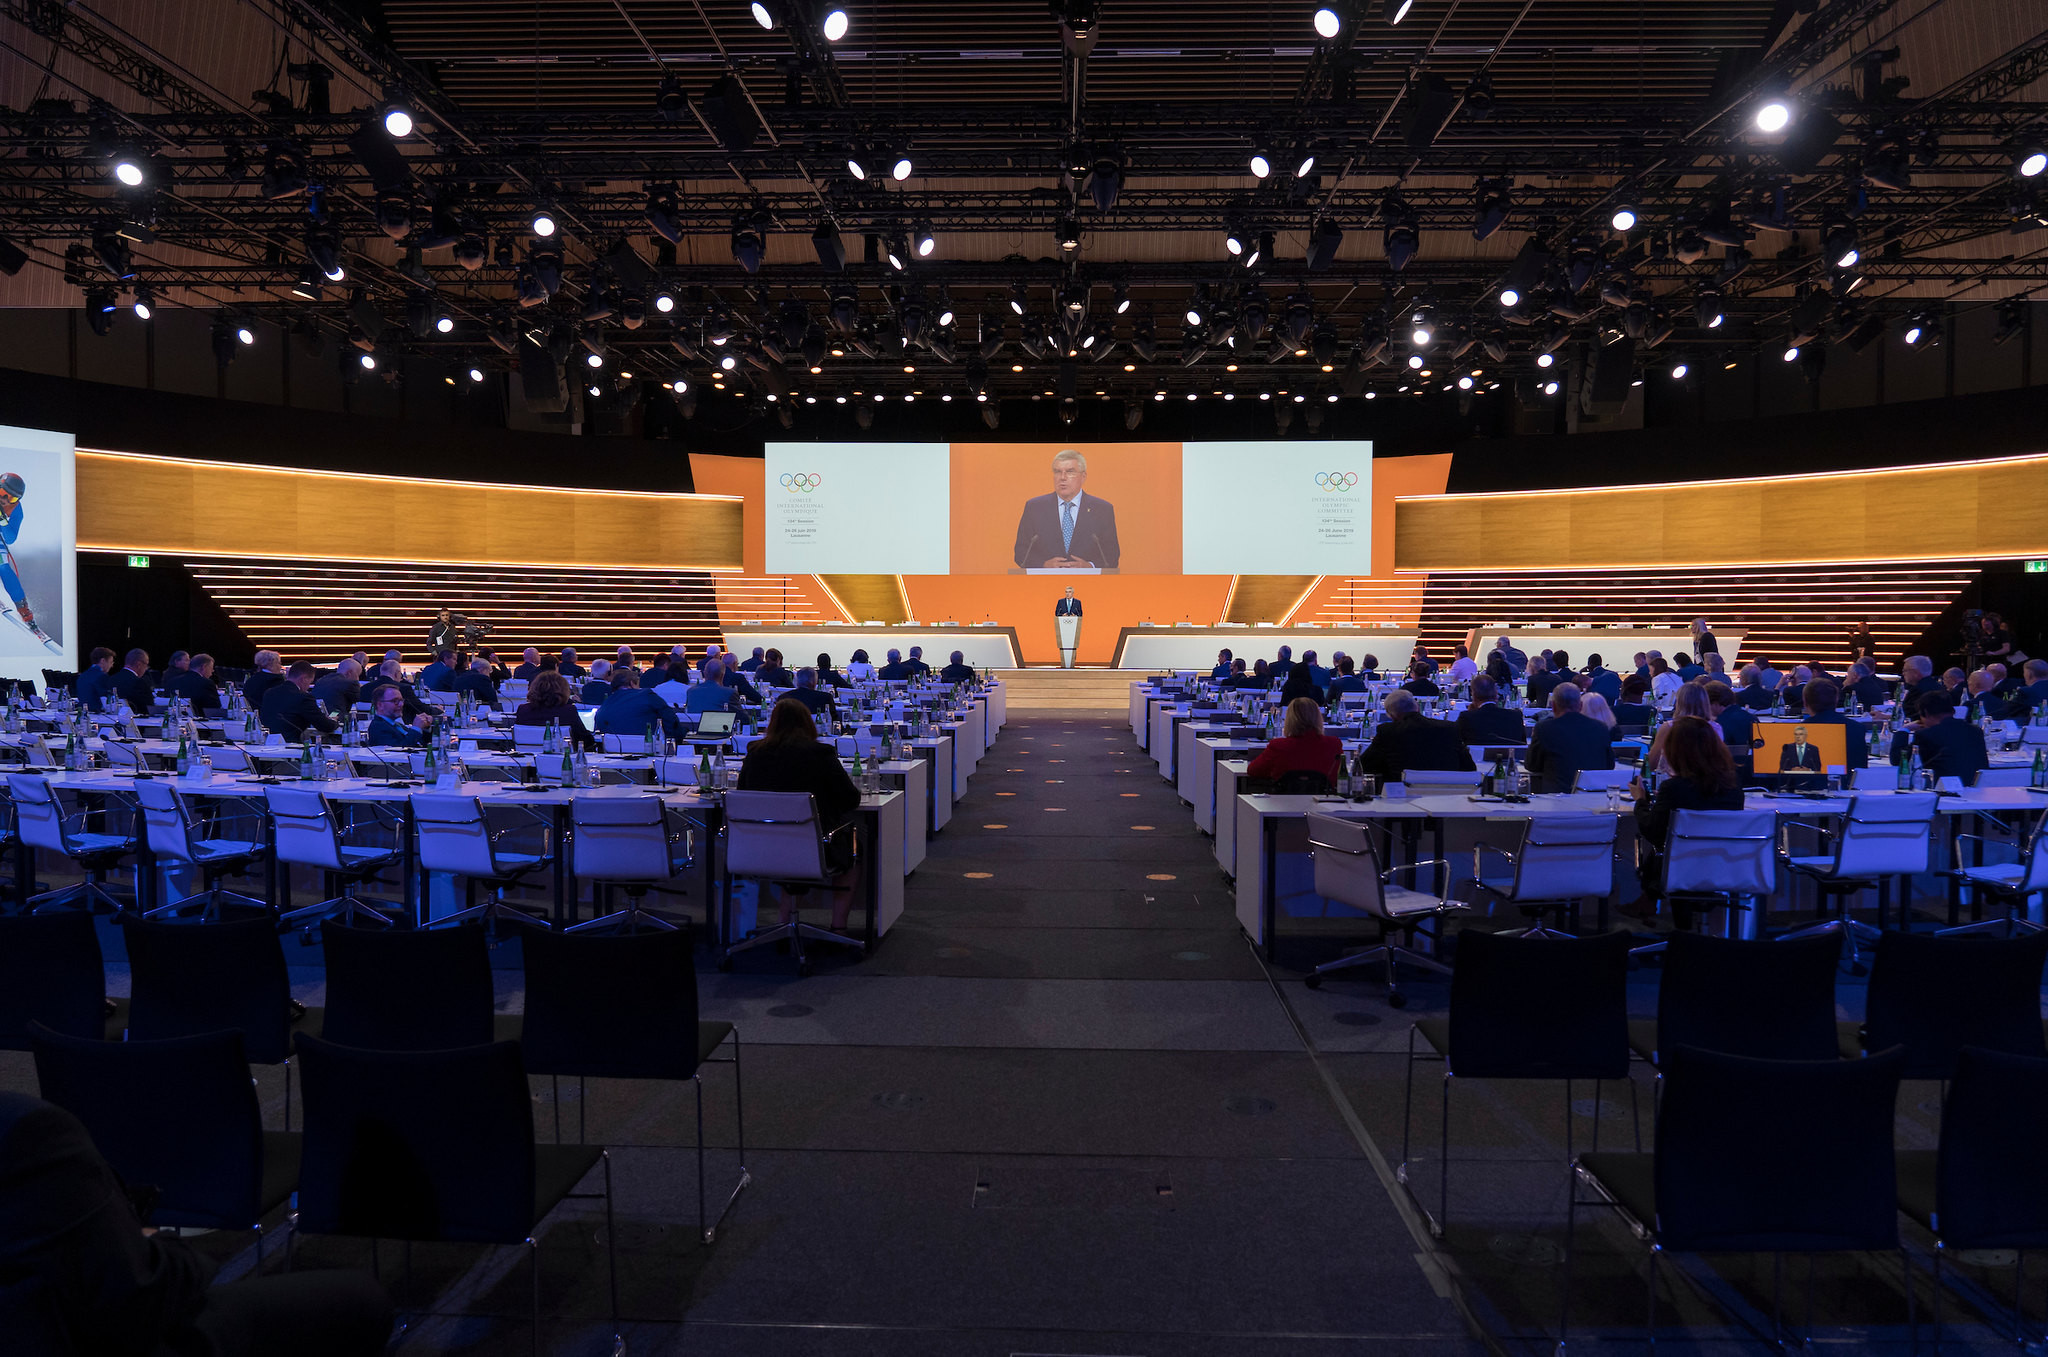 Proportion of women IOC members rises to 37 per cent - until next week